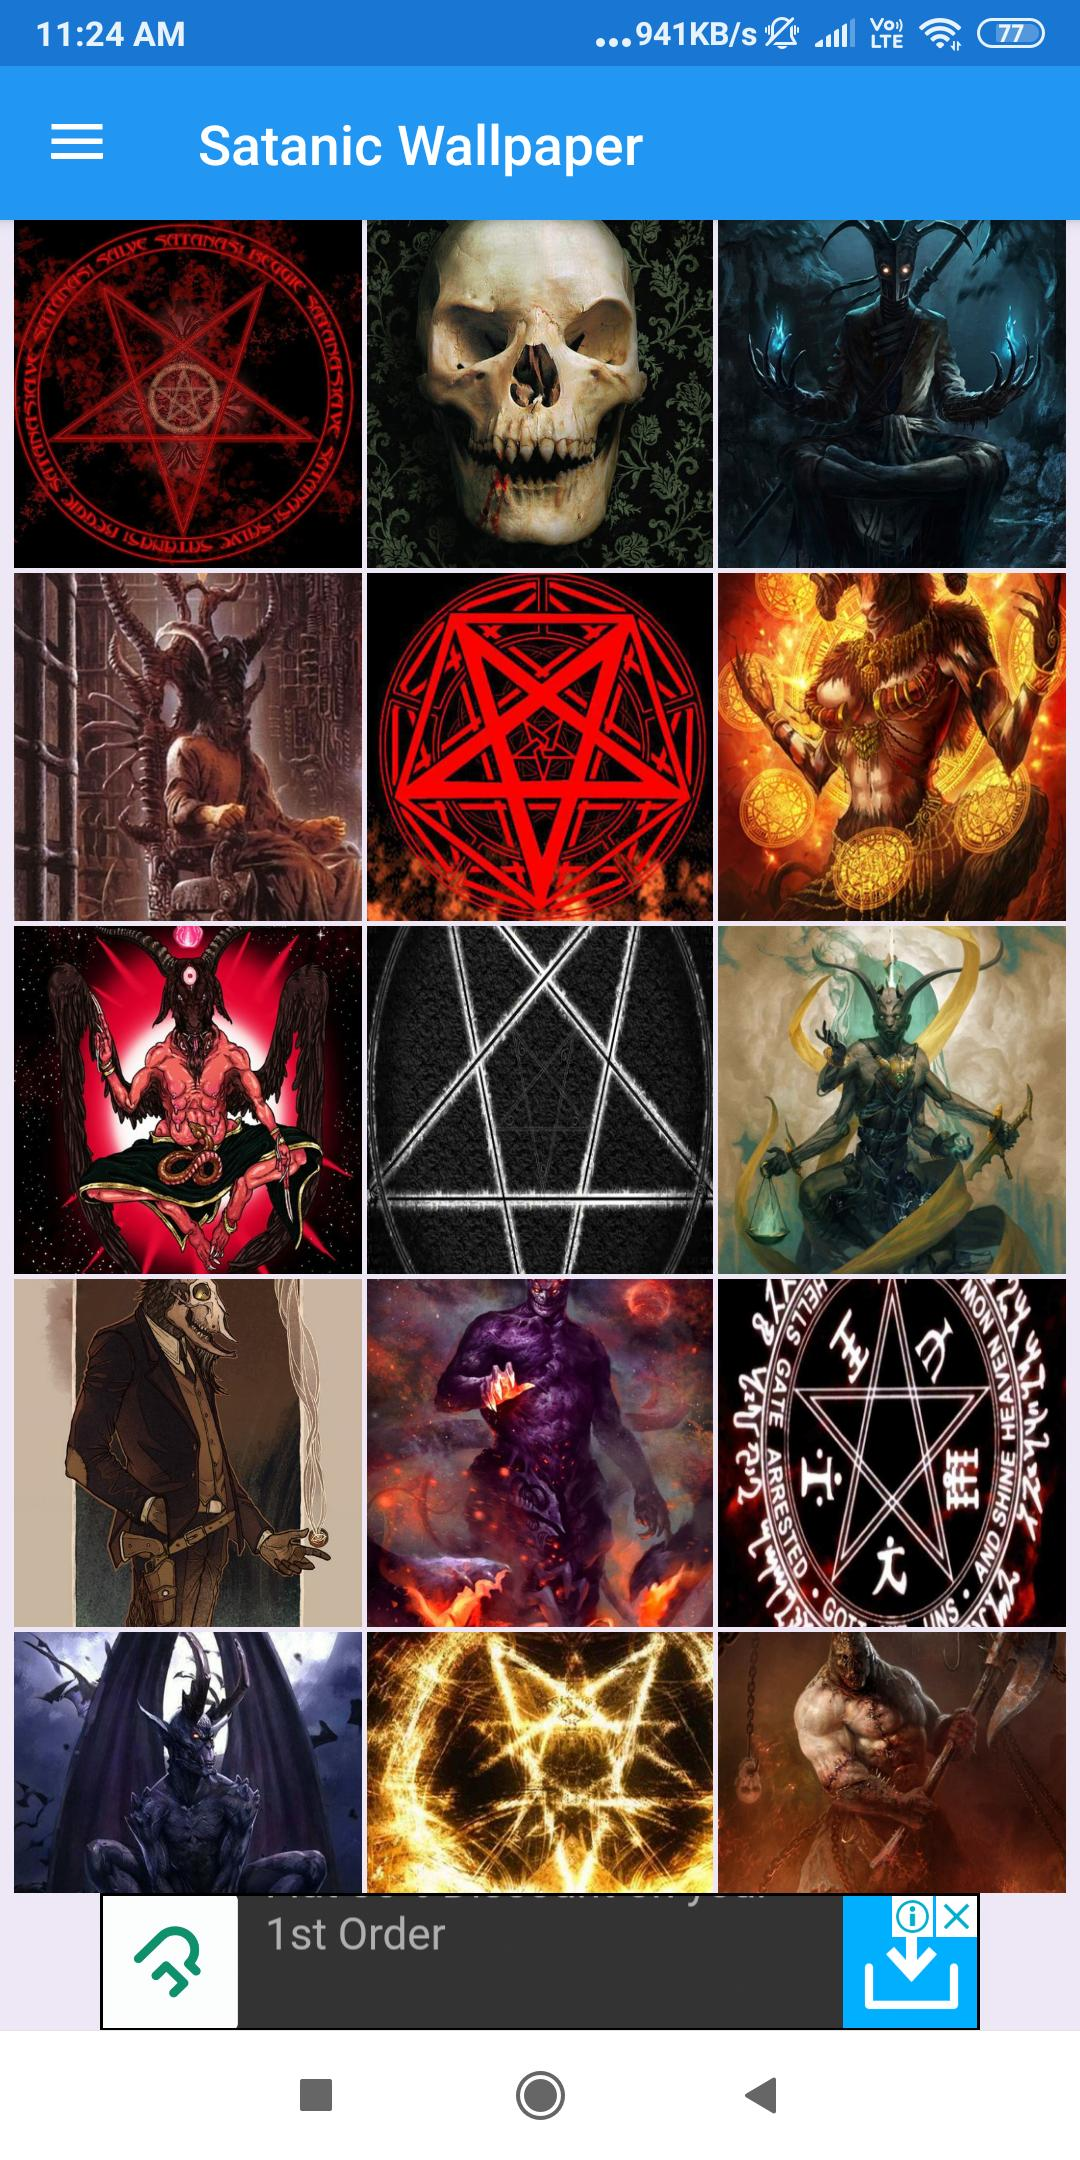 Satanic Wallpaper Hd Images Free Pics Download For Android Apk Download